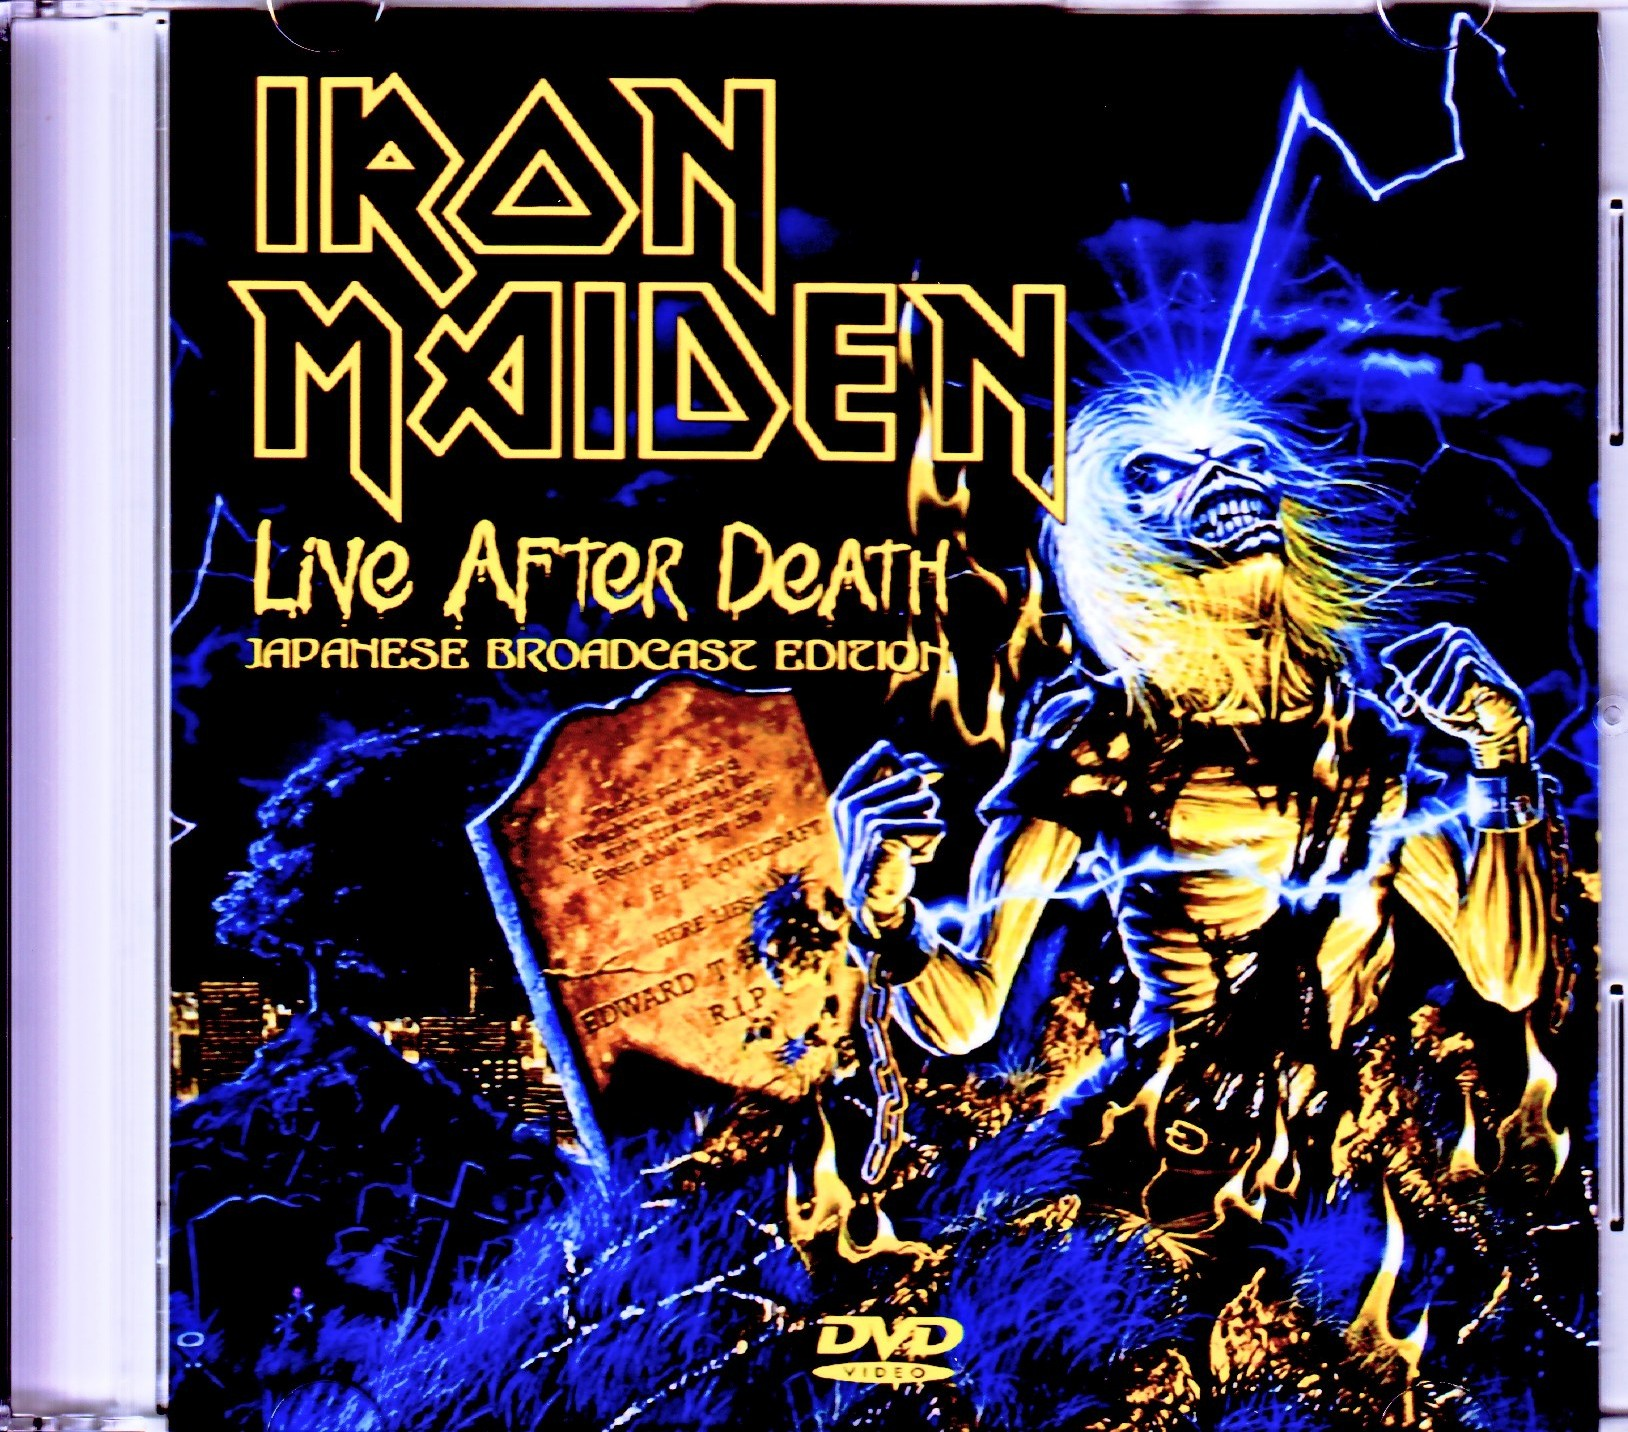 Iron Maiden アイアン・メイデン/CA,USA 1985 Japanese Broadcast